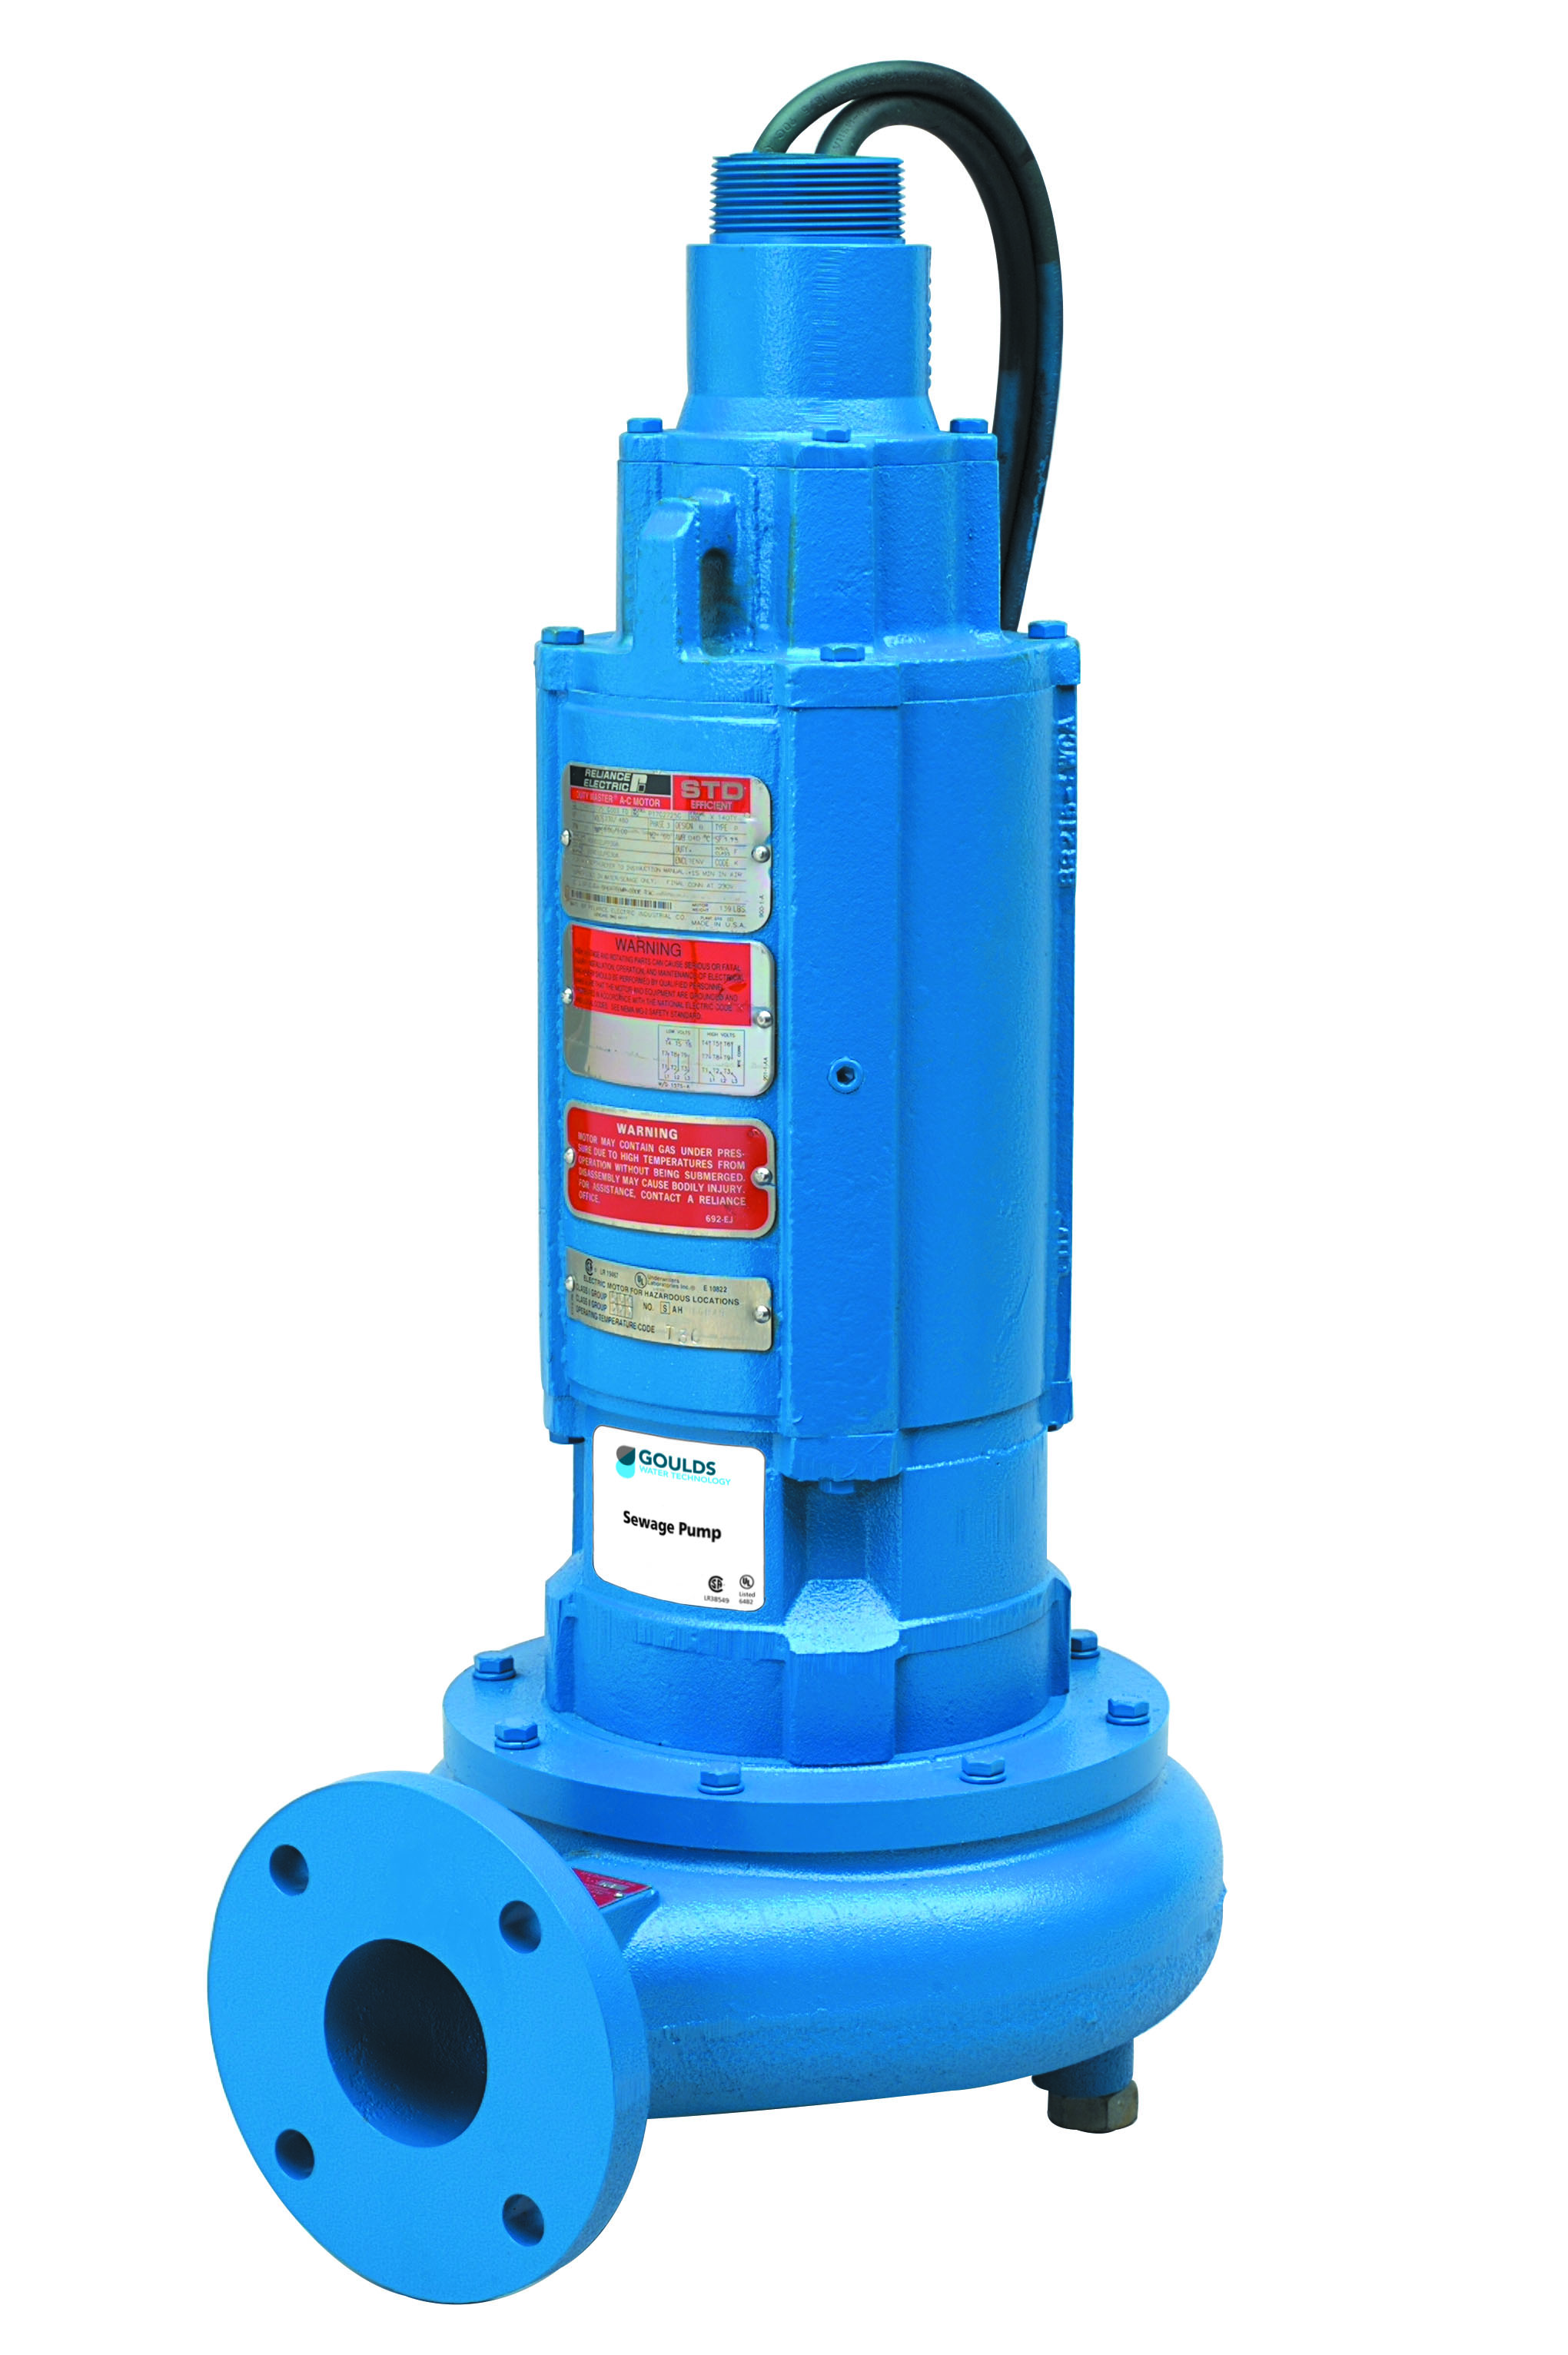 cj industries and heavy pumps The contractors range are designed robust and heavy duty to meet the demands of the construction , mining and rental industries the pumps ability to handle.